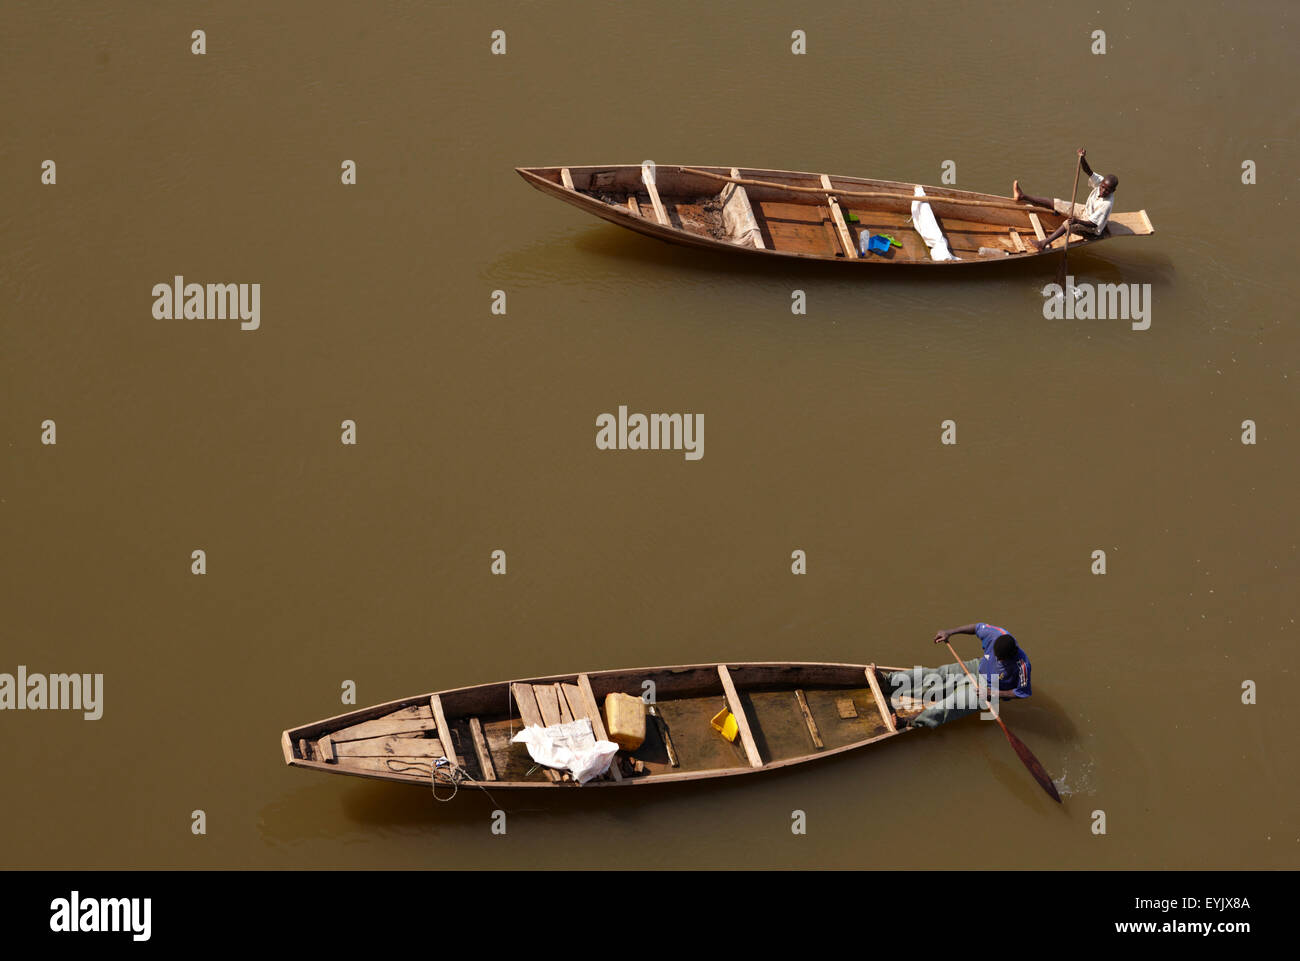 Africa, Cameroon, North Province, Garoua area, pirogues on the river Benoué - Stock Image